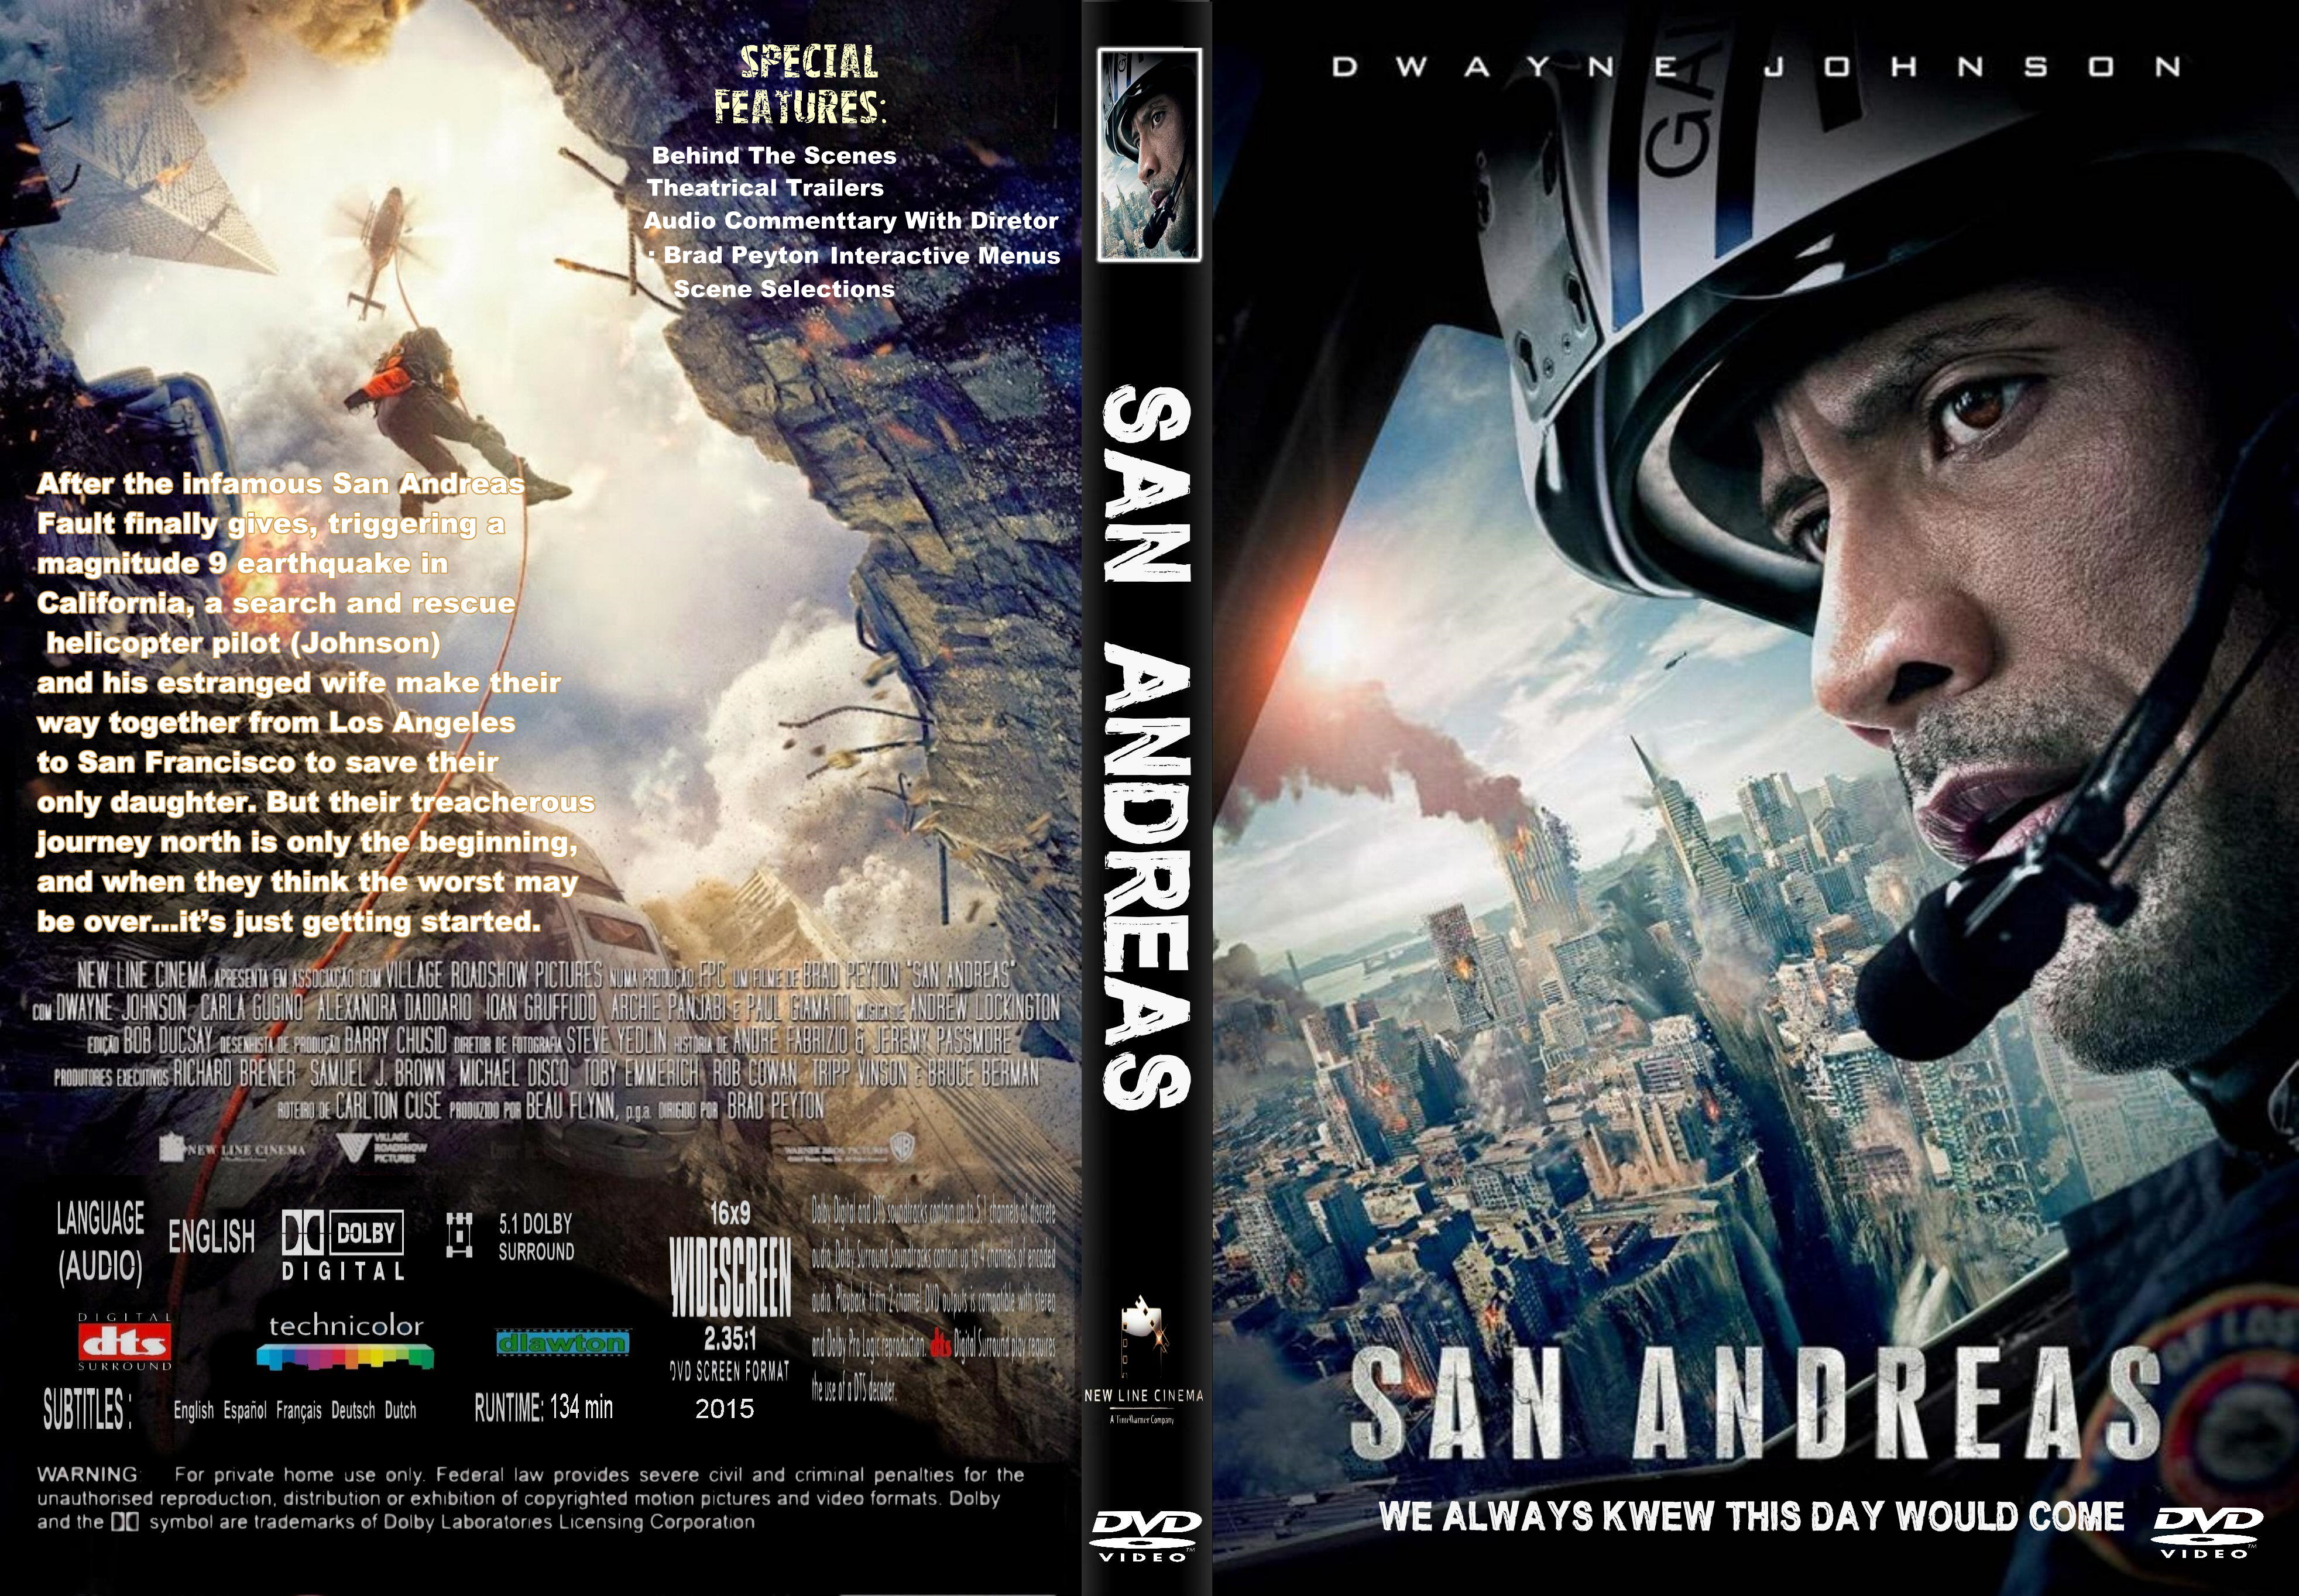 San Andreas 2015 R1 Custom Dvd Covers Cover Century Over 500 000 Album Art Covers For Free